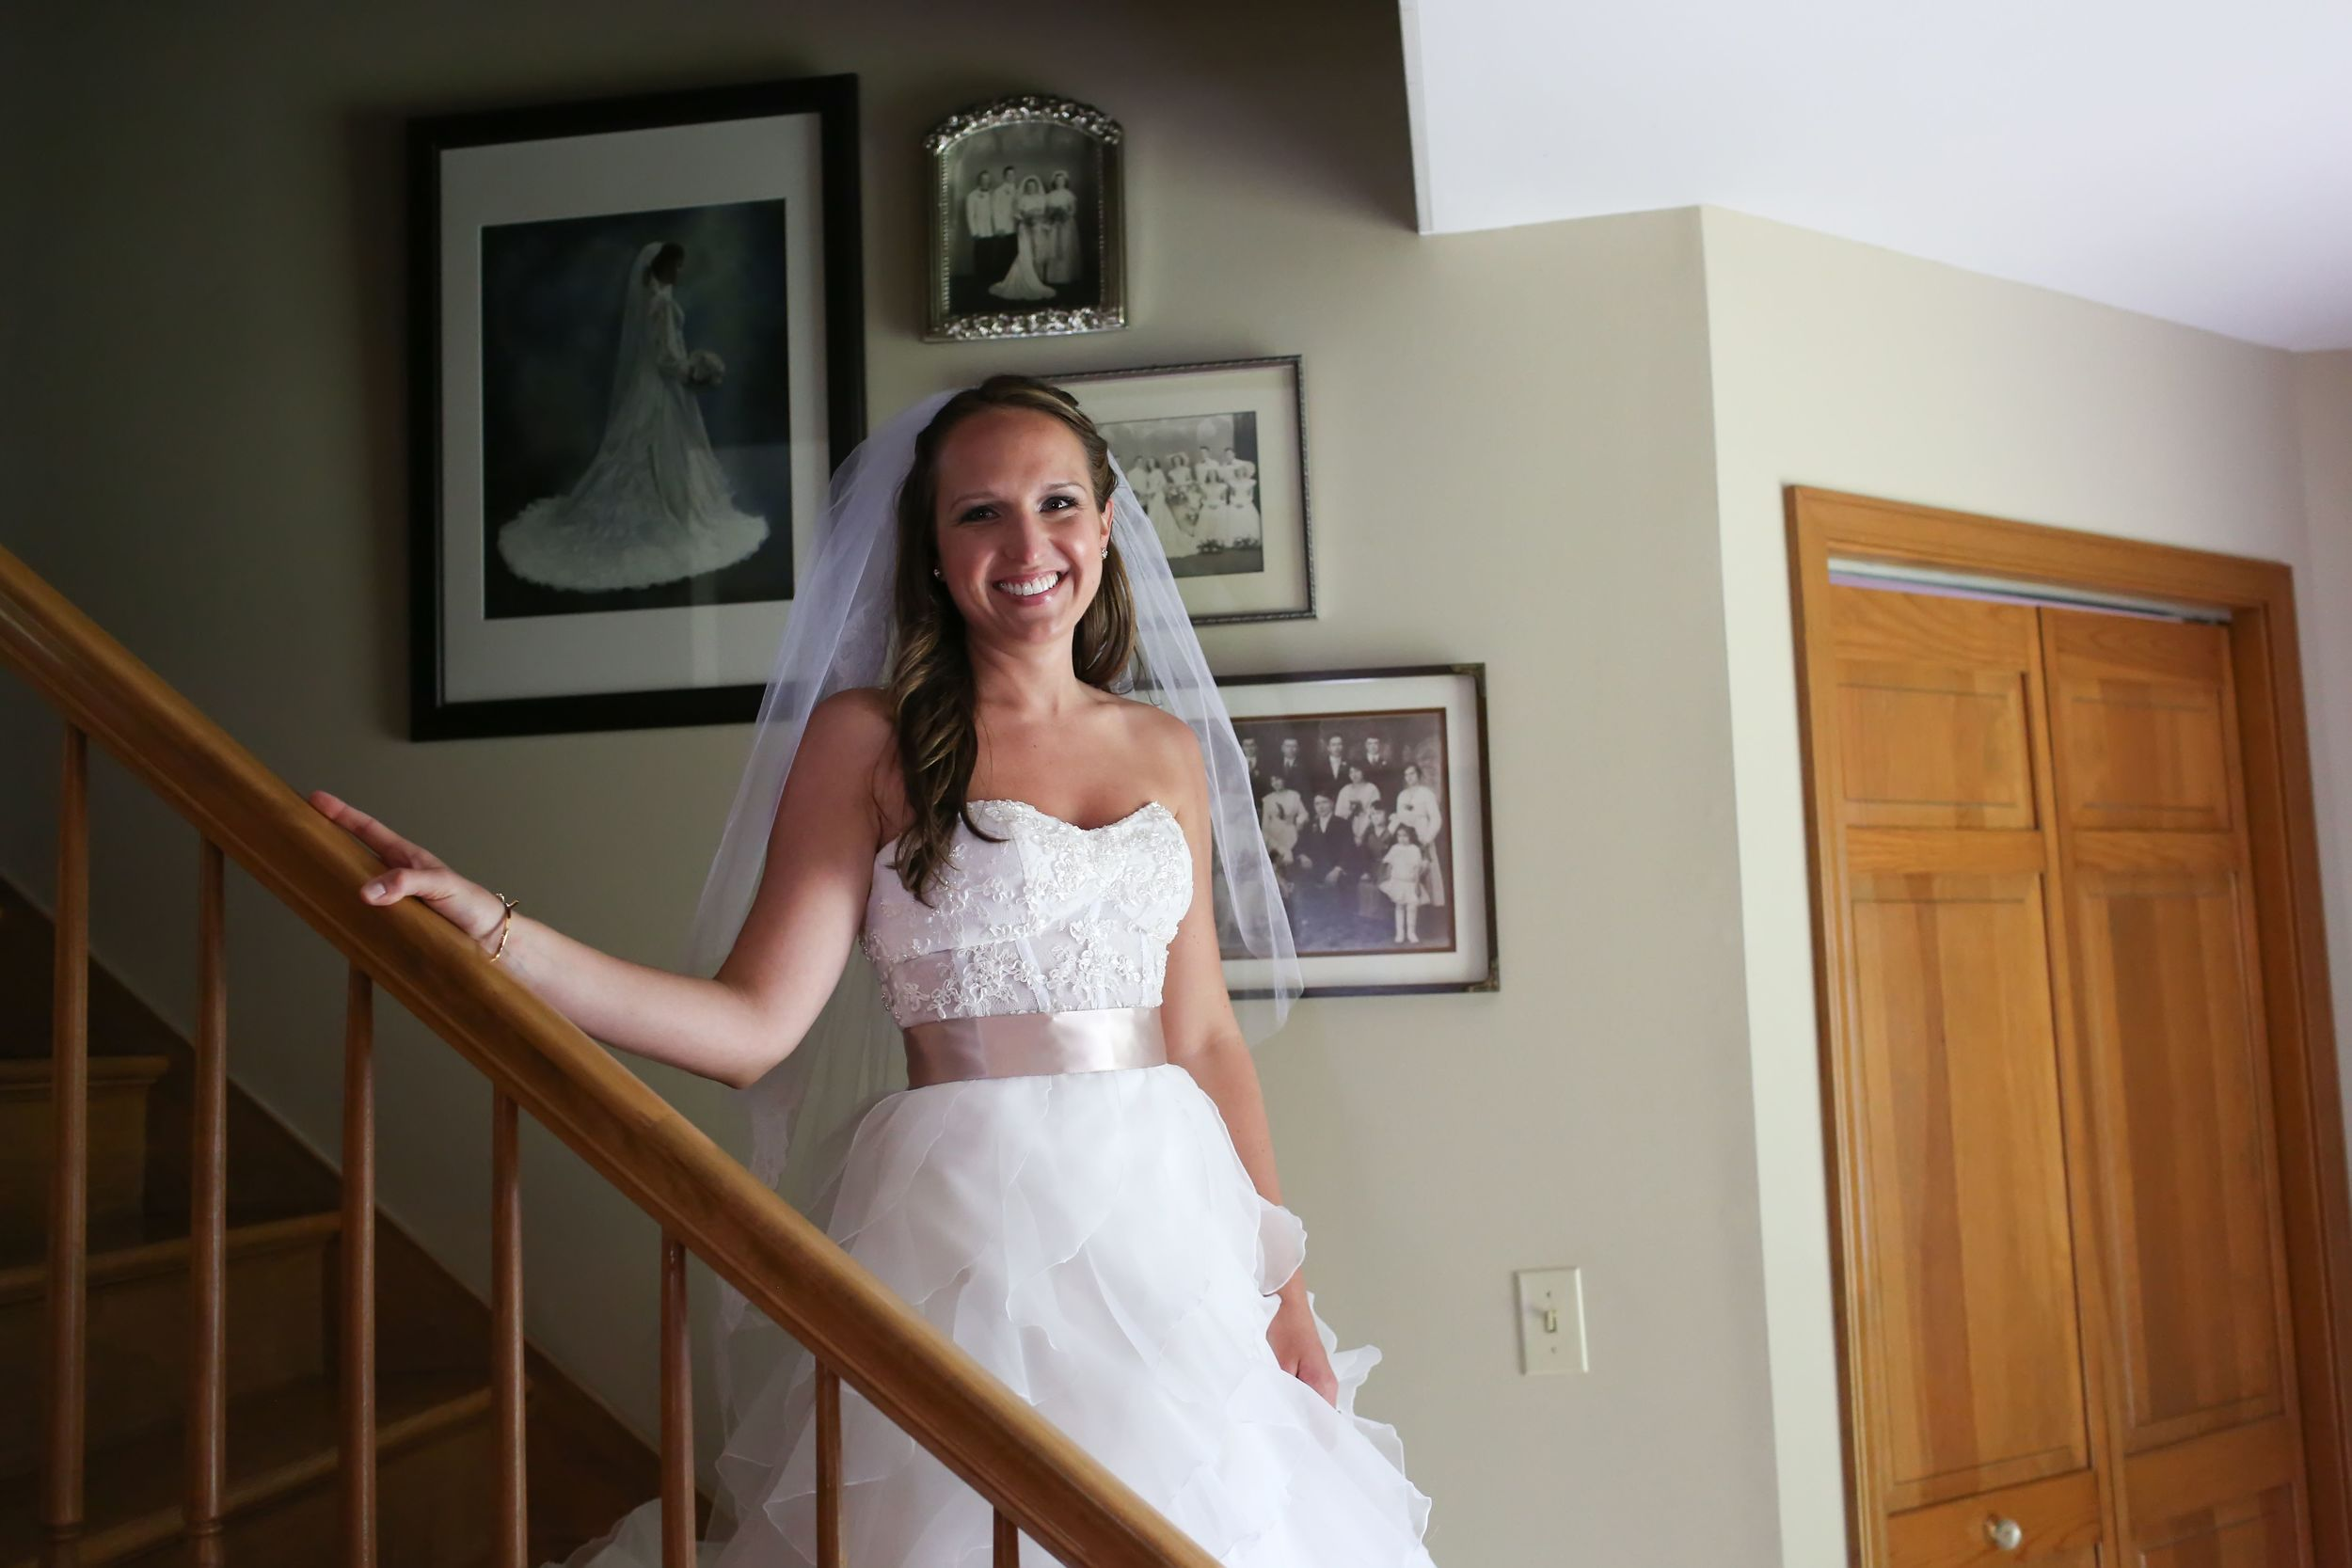 LOVED this moment, love the photos of all of the weddings from the past generations in the background.